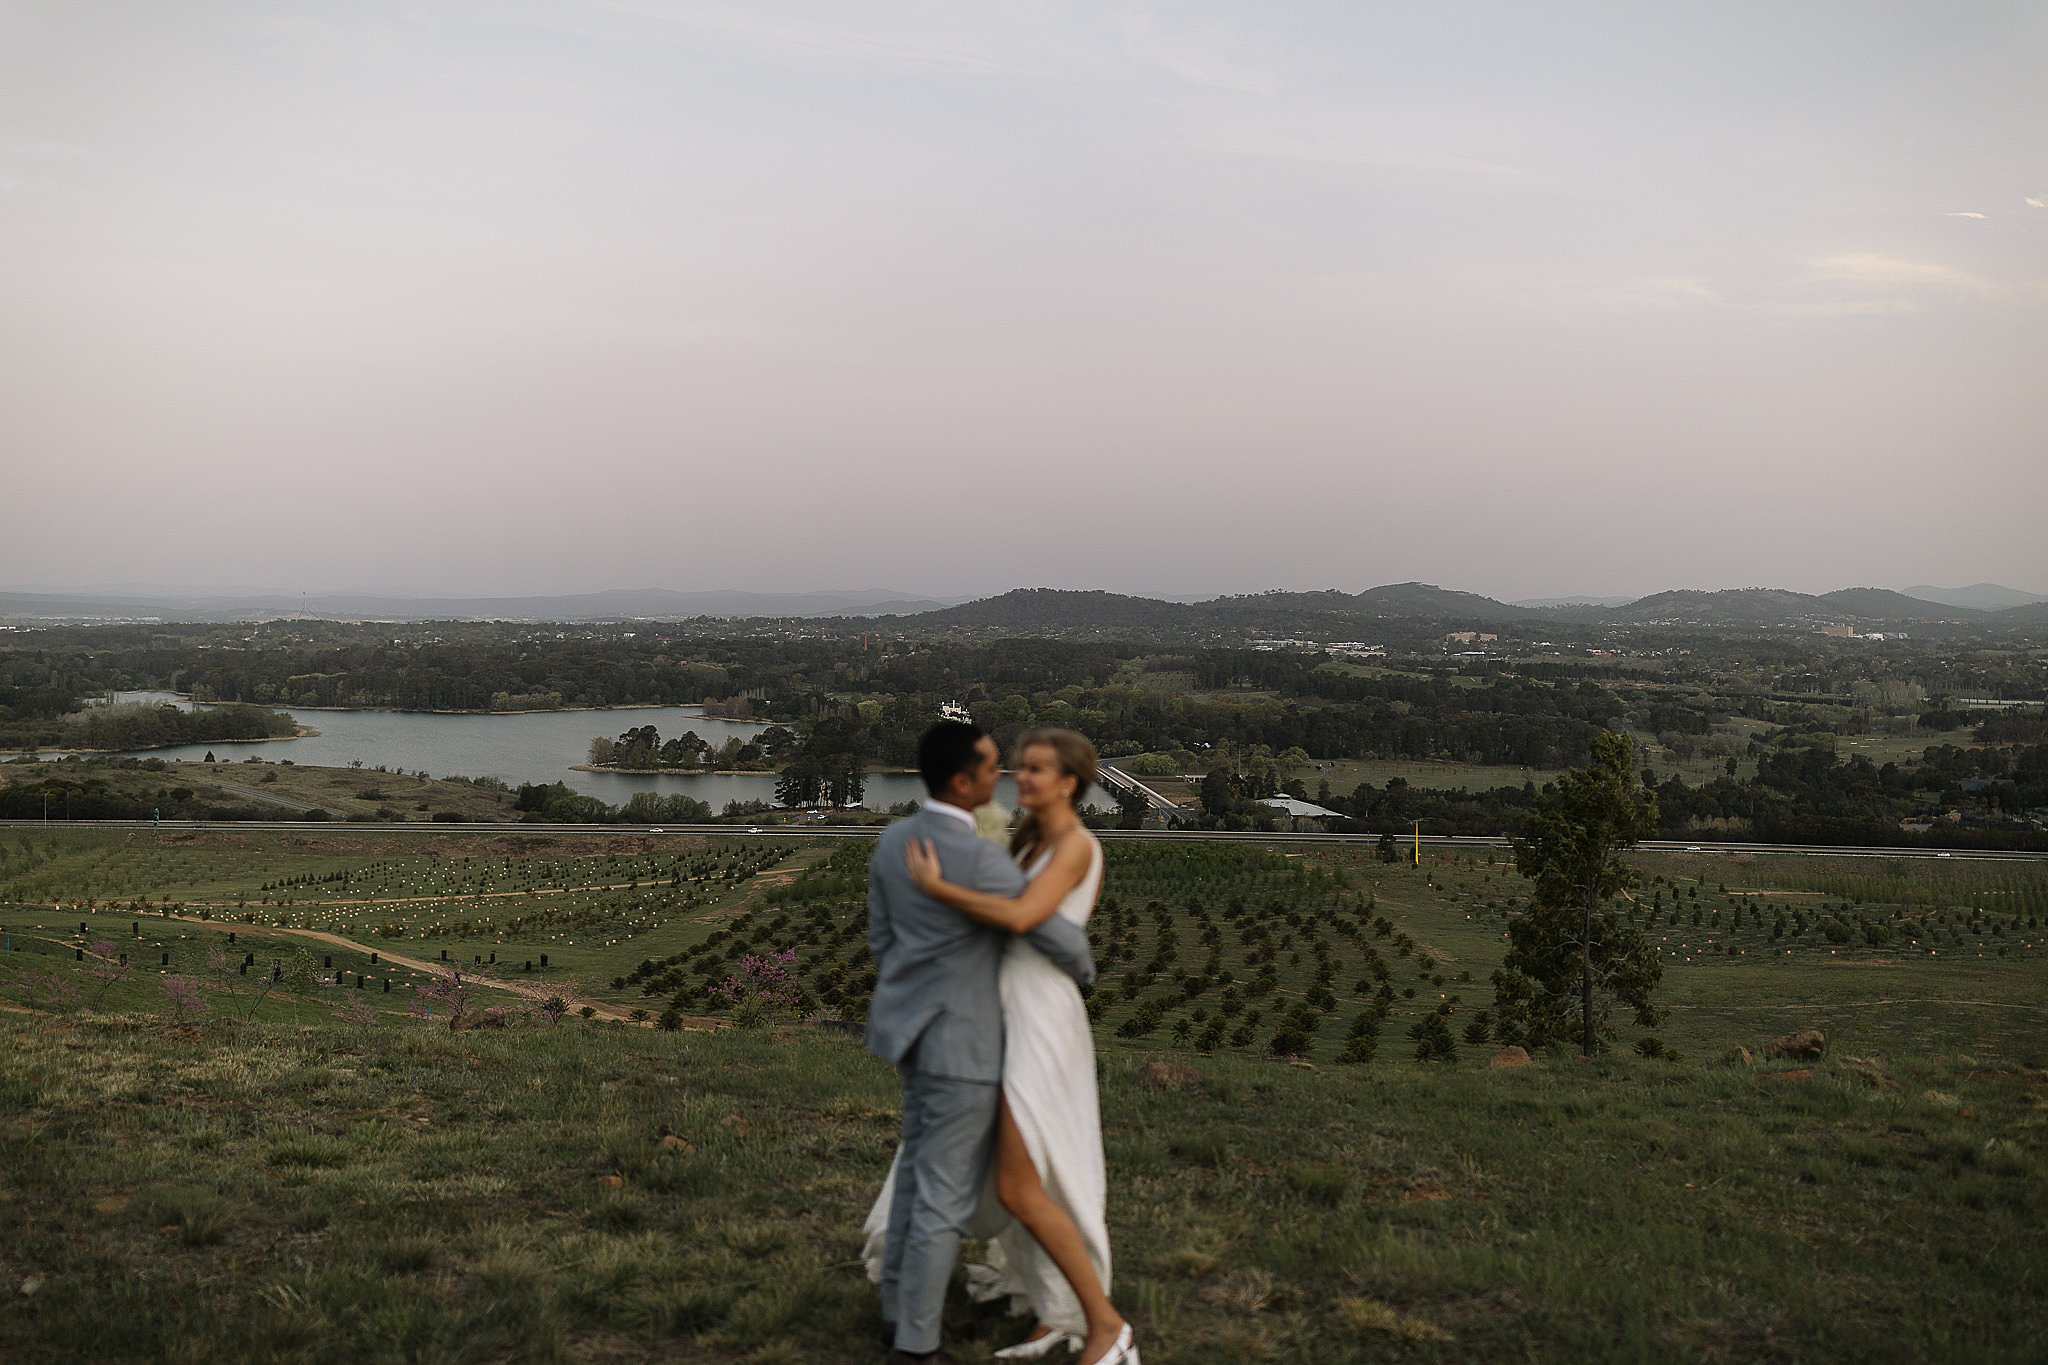 Canberra Photography,Canberra Portrait Photography,country wedding,Keepsakephoto by the Keeffes,Cork Forest Canberra,canberra weddings,Canberra Wedding Photography,Canberra Wedding Photographer,canberra wedding,Autumn Engagement,Arboretum,National Arboretum Canberra,